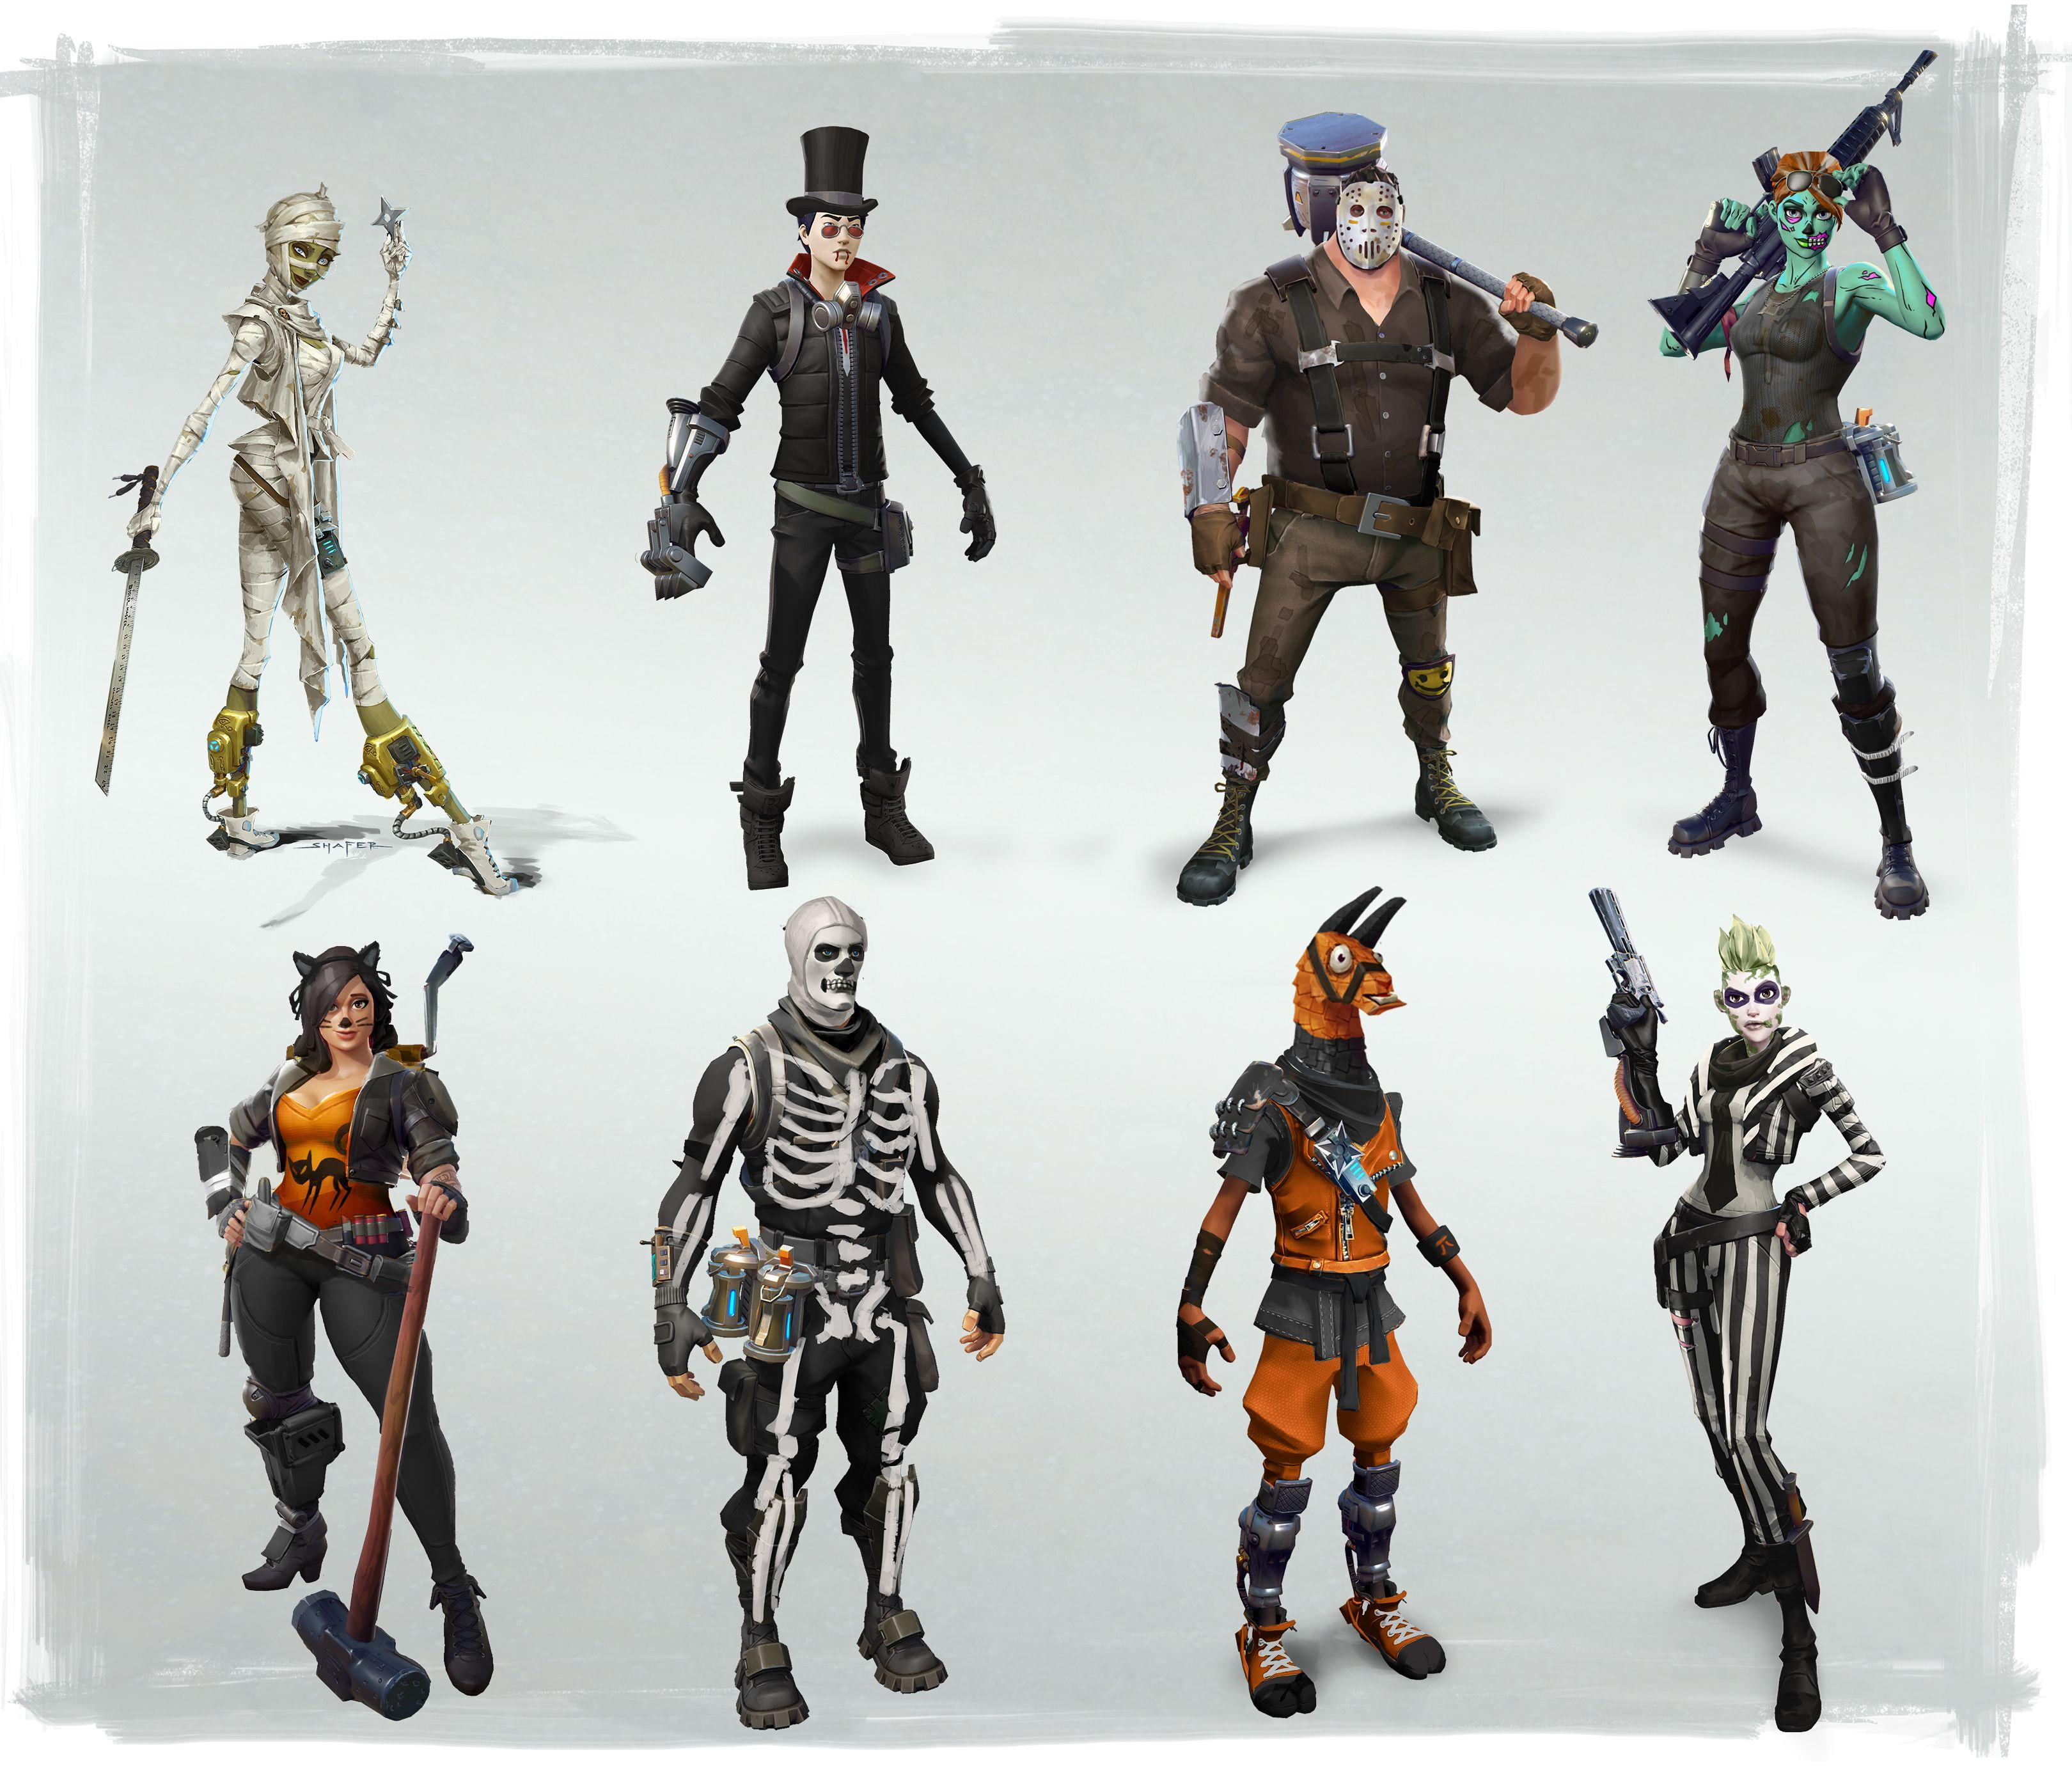 Pictures of Fortnitemares Halloween event arrives to Fortnite 1/1